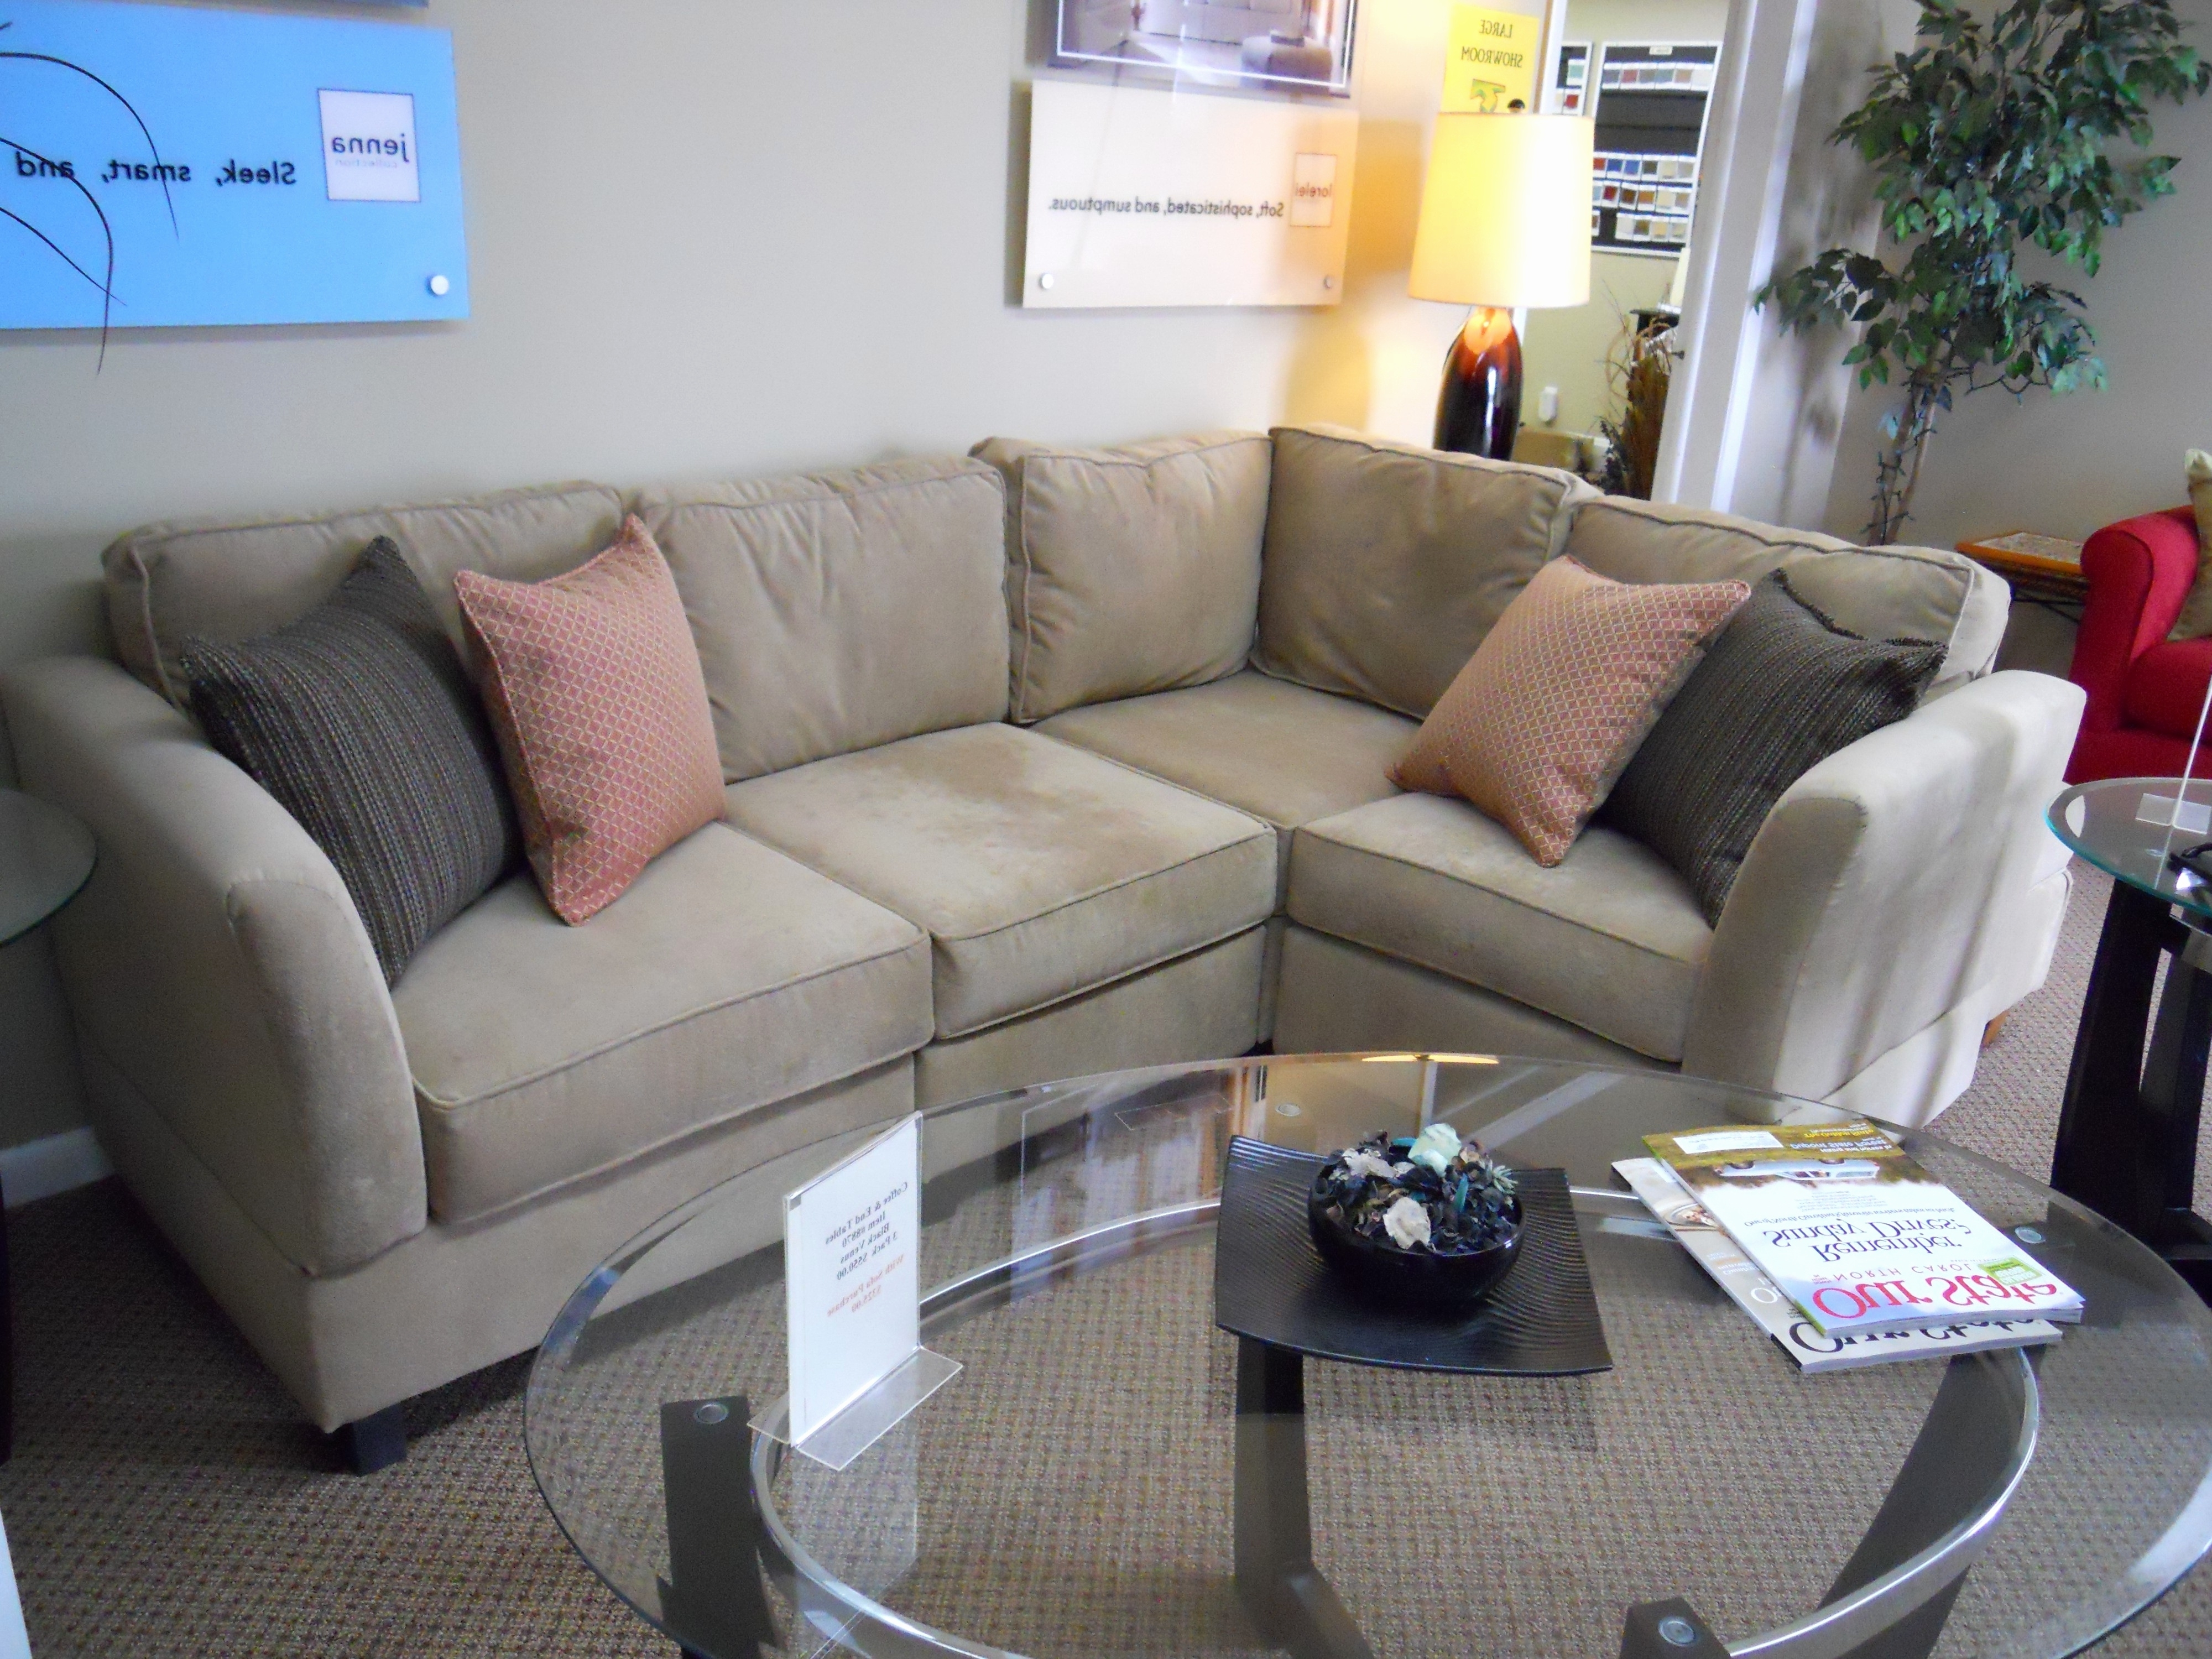 Kmart Sectional Sofas Pertaining To Current New Sofa Bed Under 300 2018 – Couches Ideas (View 5 of 20)